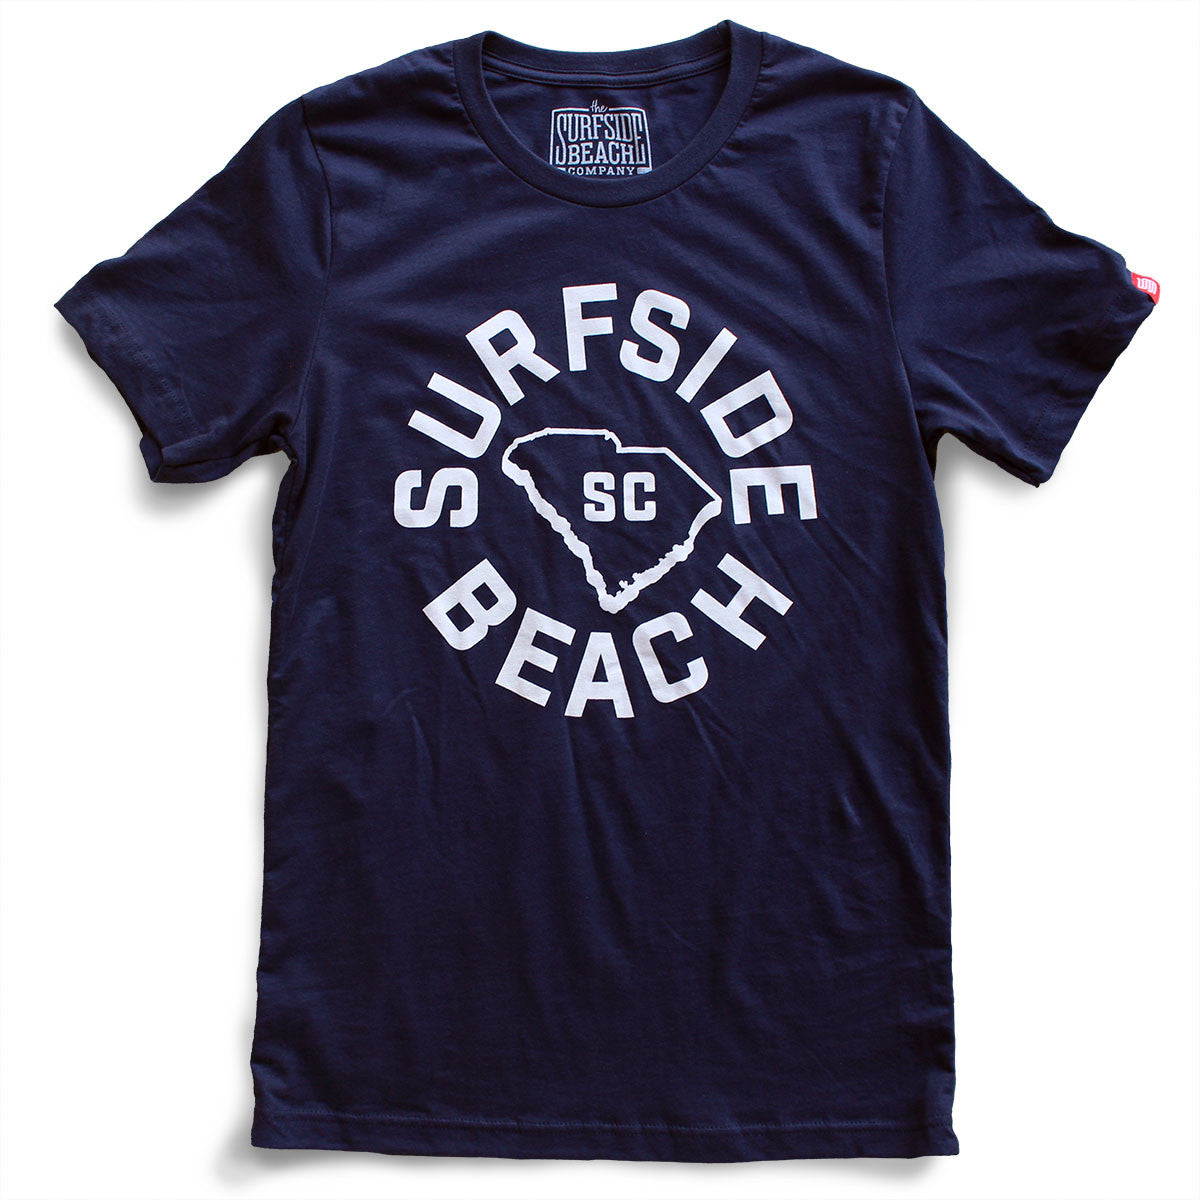 Surfside Beach, SC (Circle State) Unisex T-Shirt (navy)